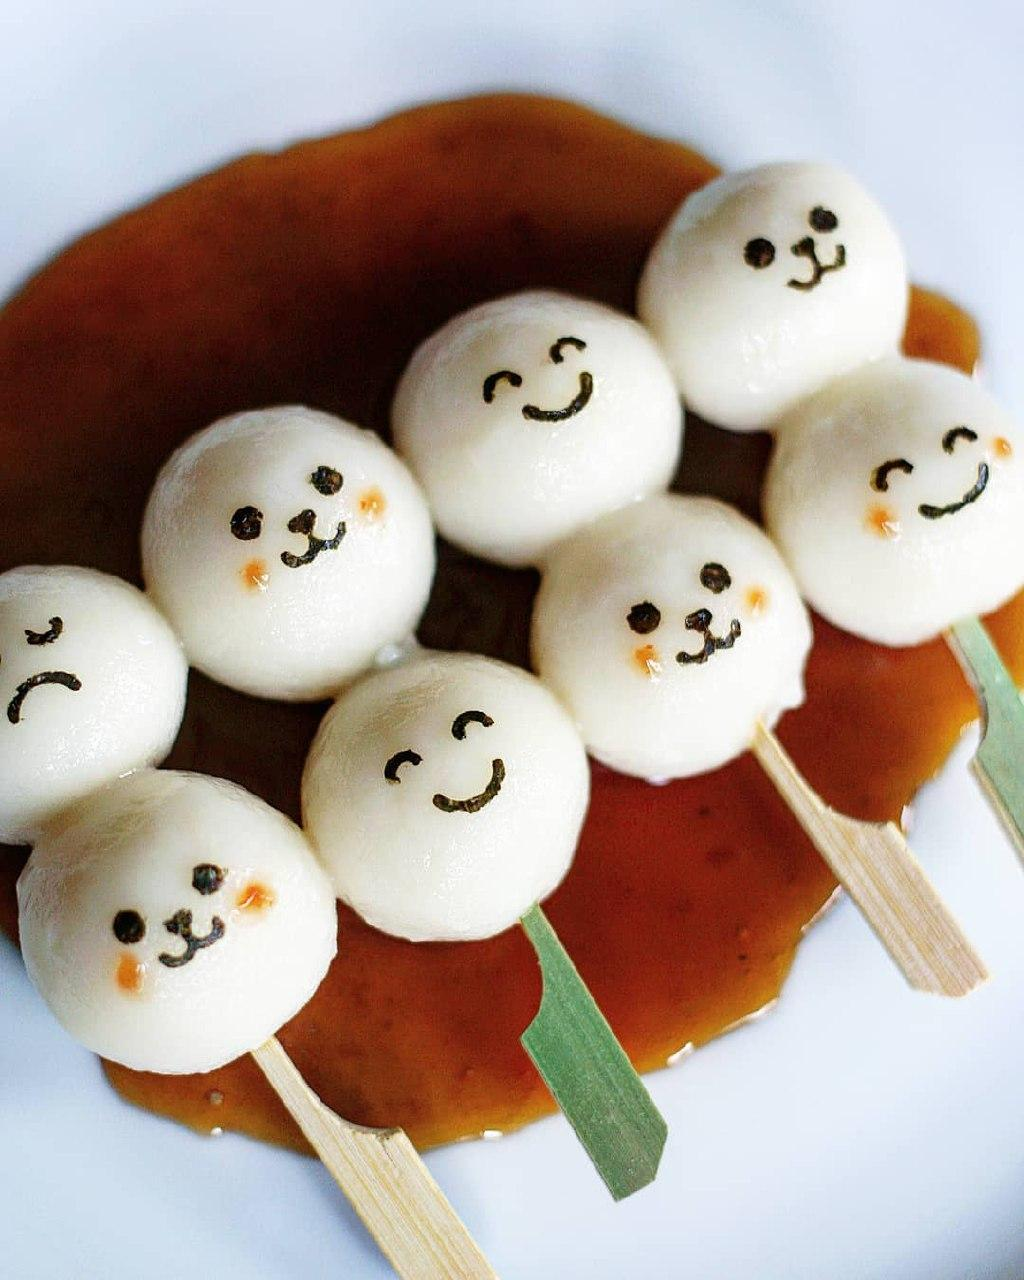 10 Simple Japanese Desserts You Can Actually Make At Home